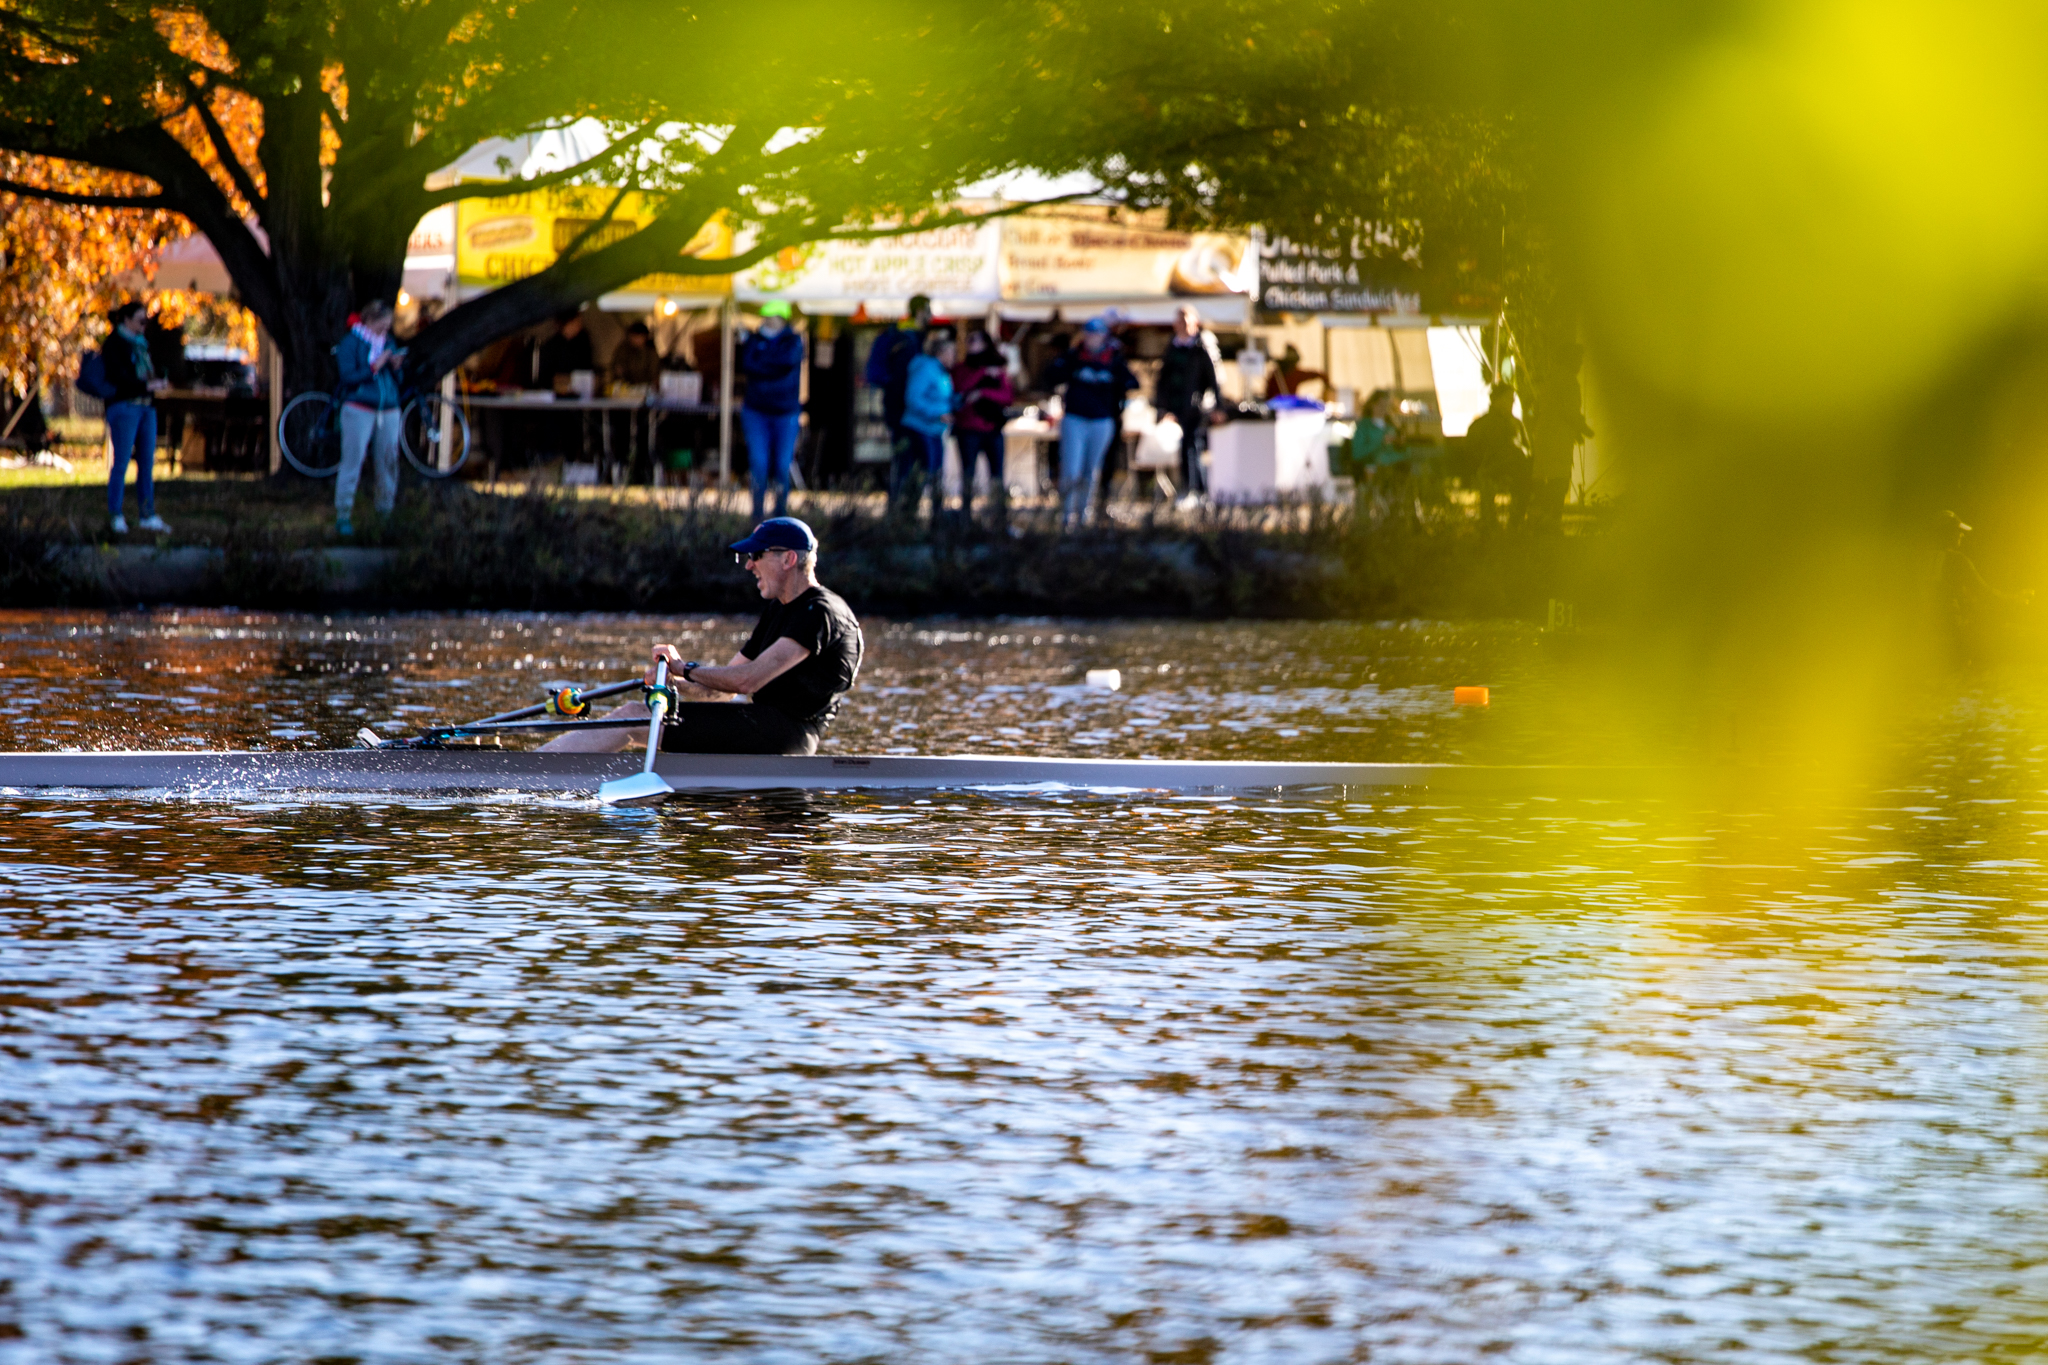 Before the Head of the Charles, Every Year There is the Head of the Kevin